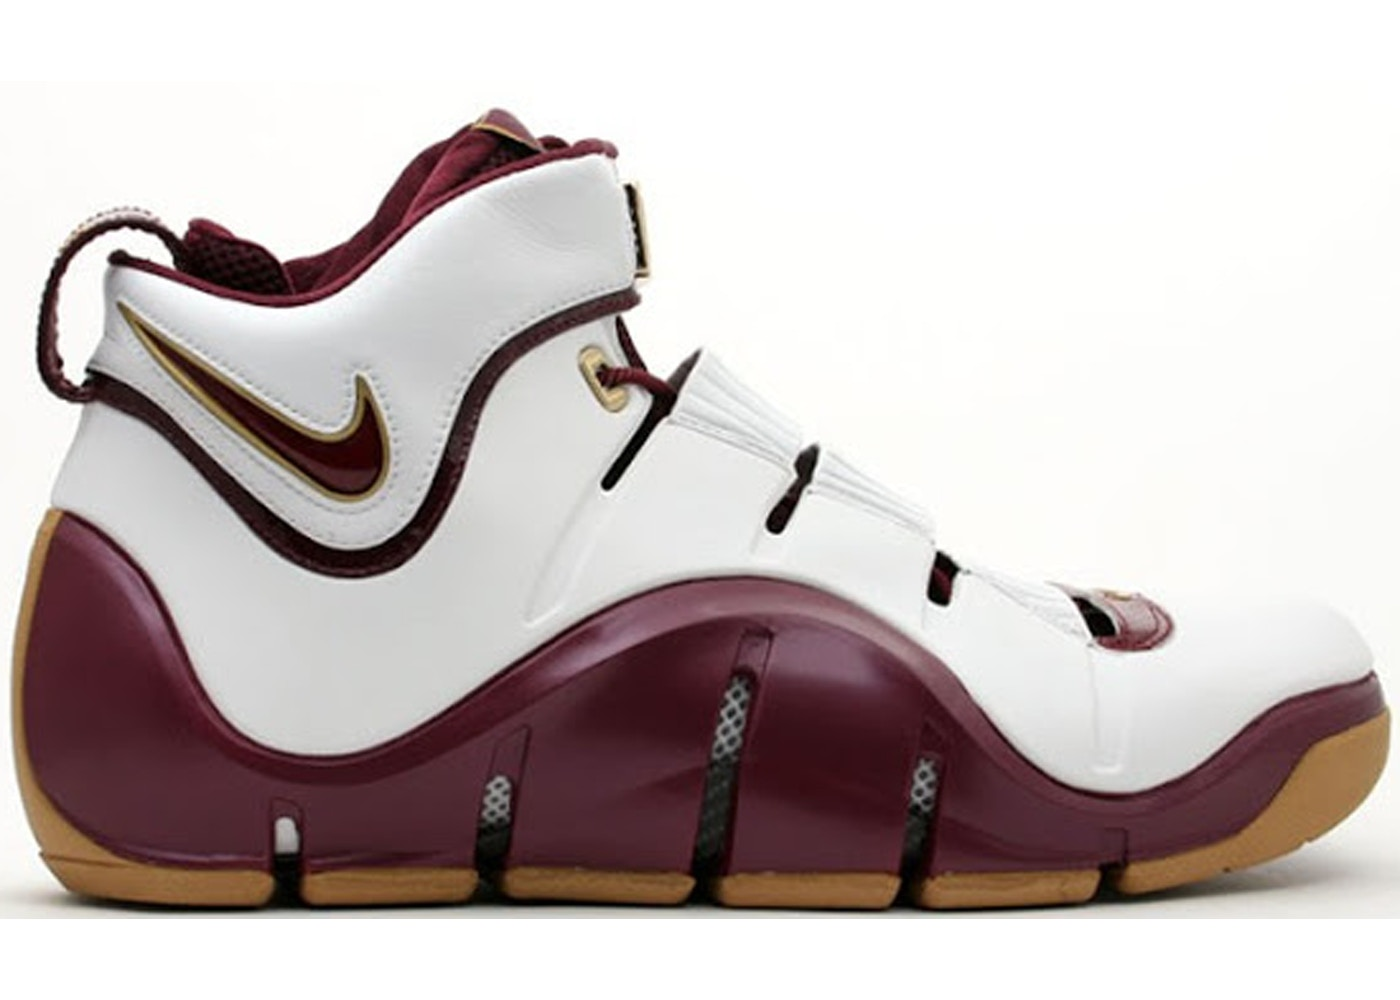 half off 9d743 db189 Nike LeBron 4 Shoes - Release Date